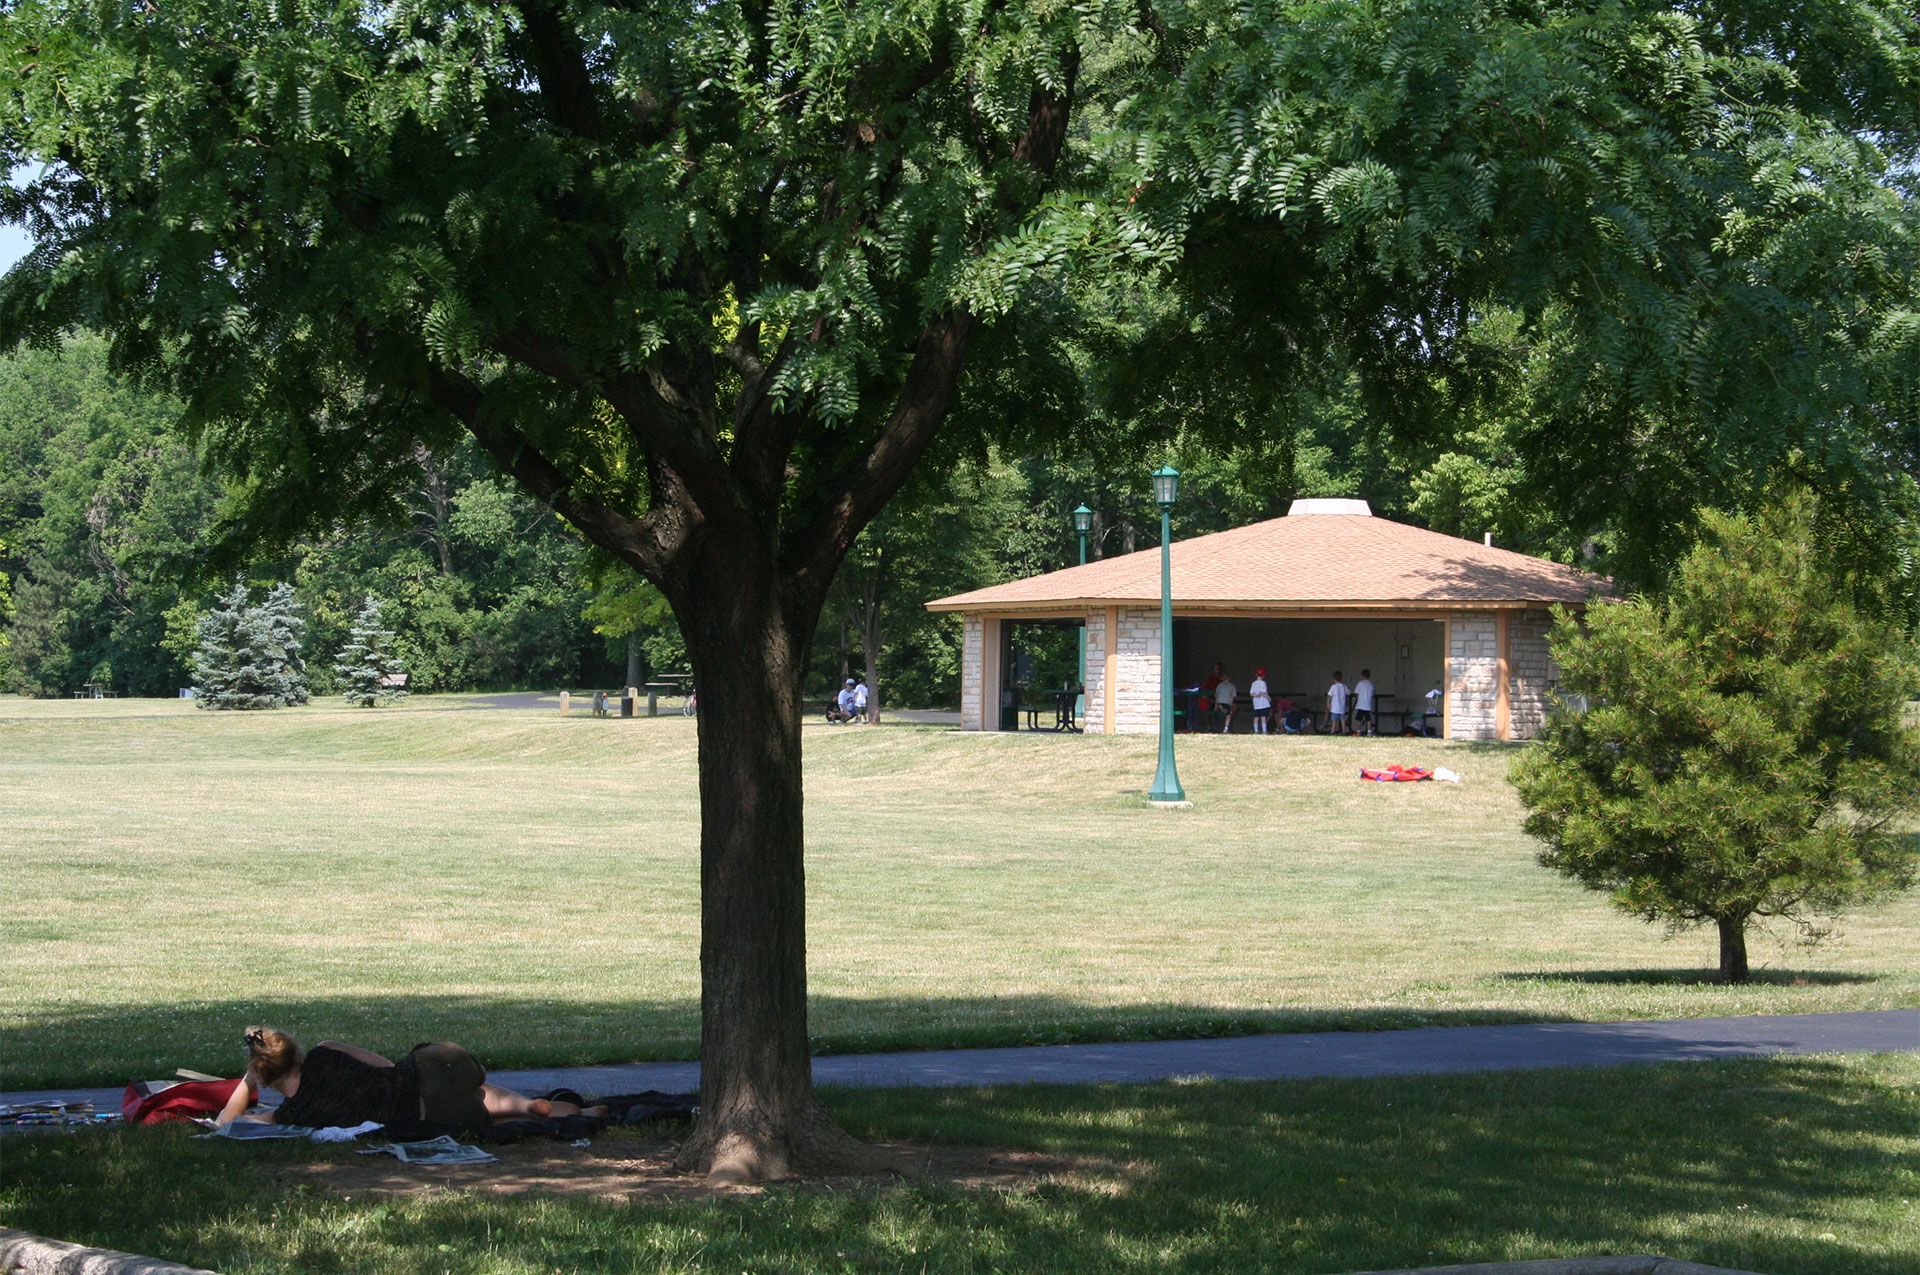 Thompson Park Shelter